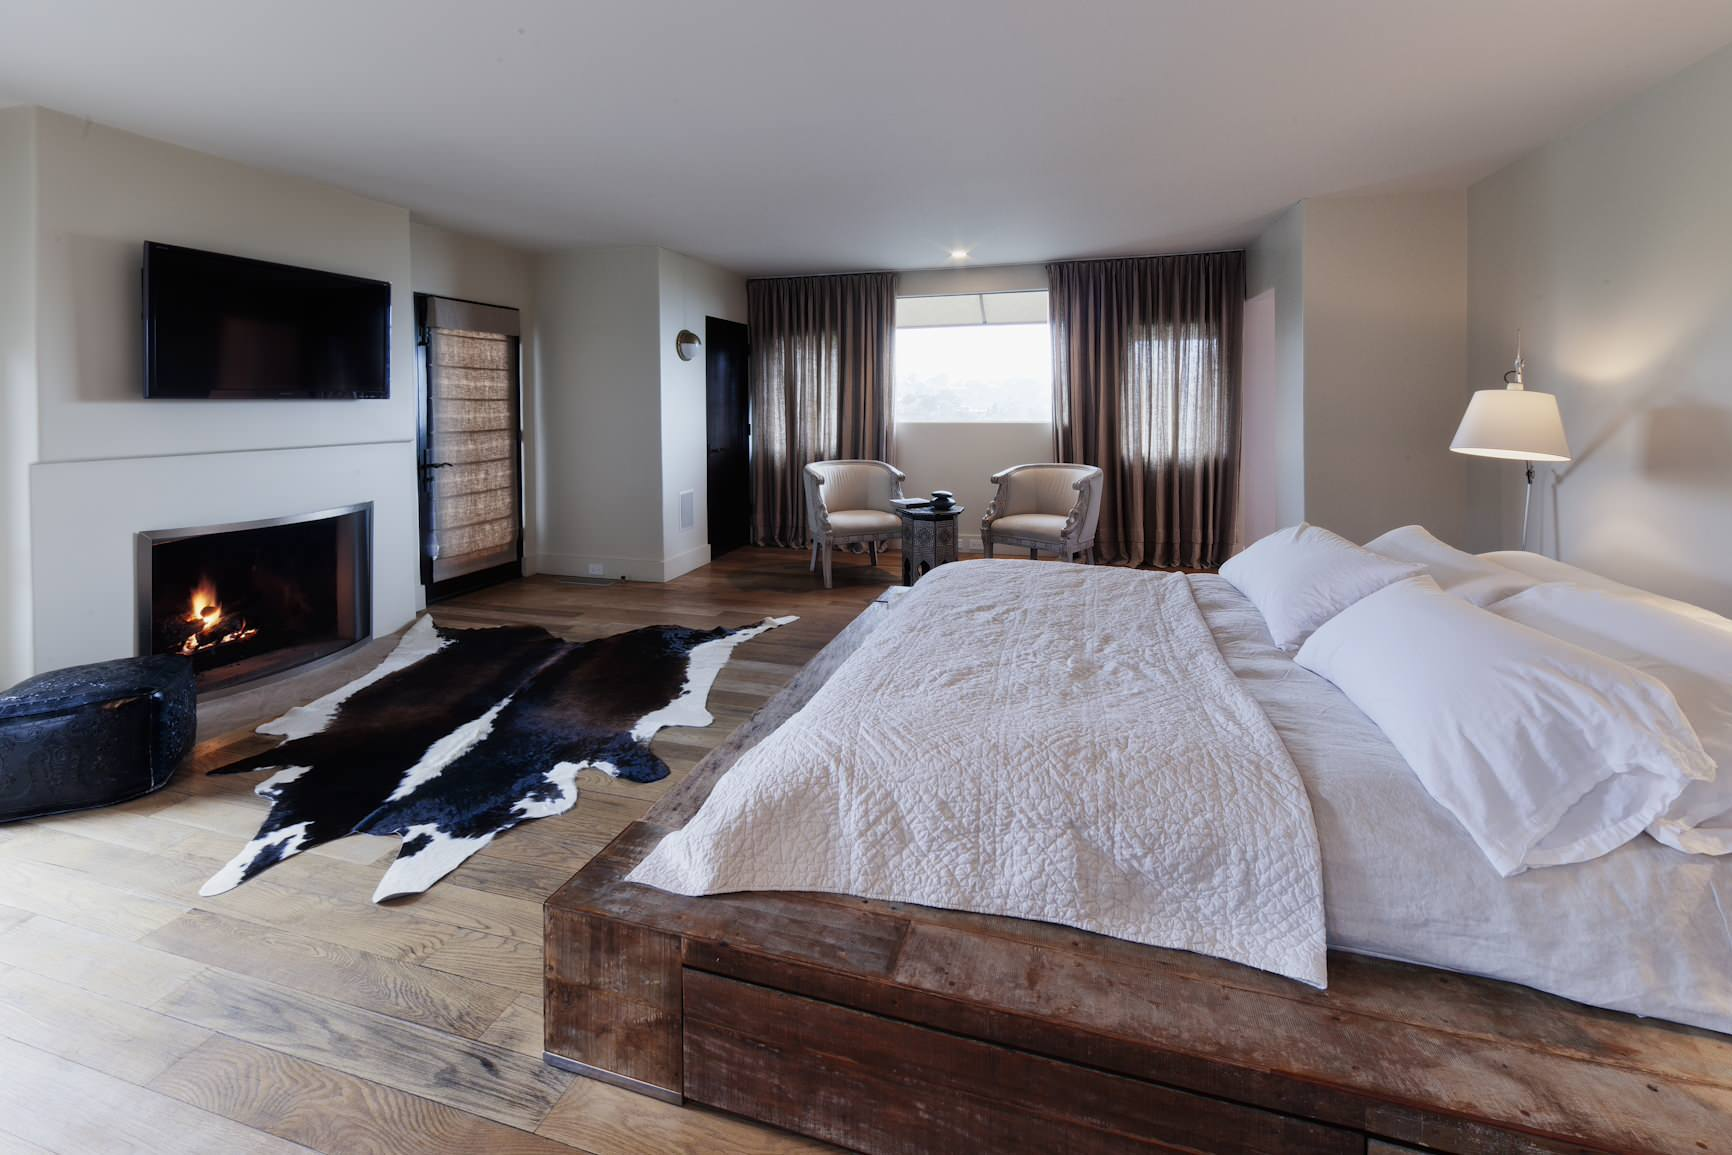 bedroom cowhide rug in master bedroom with neutral colors and